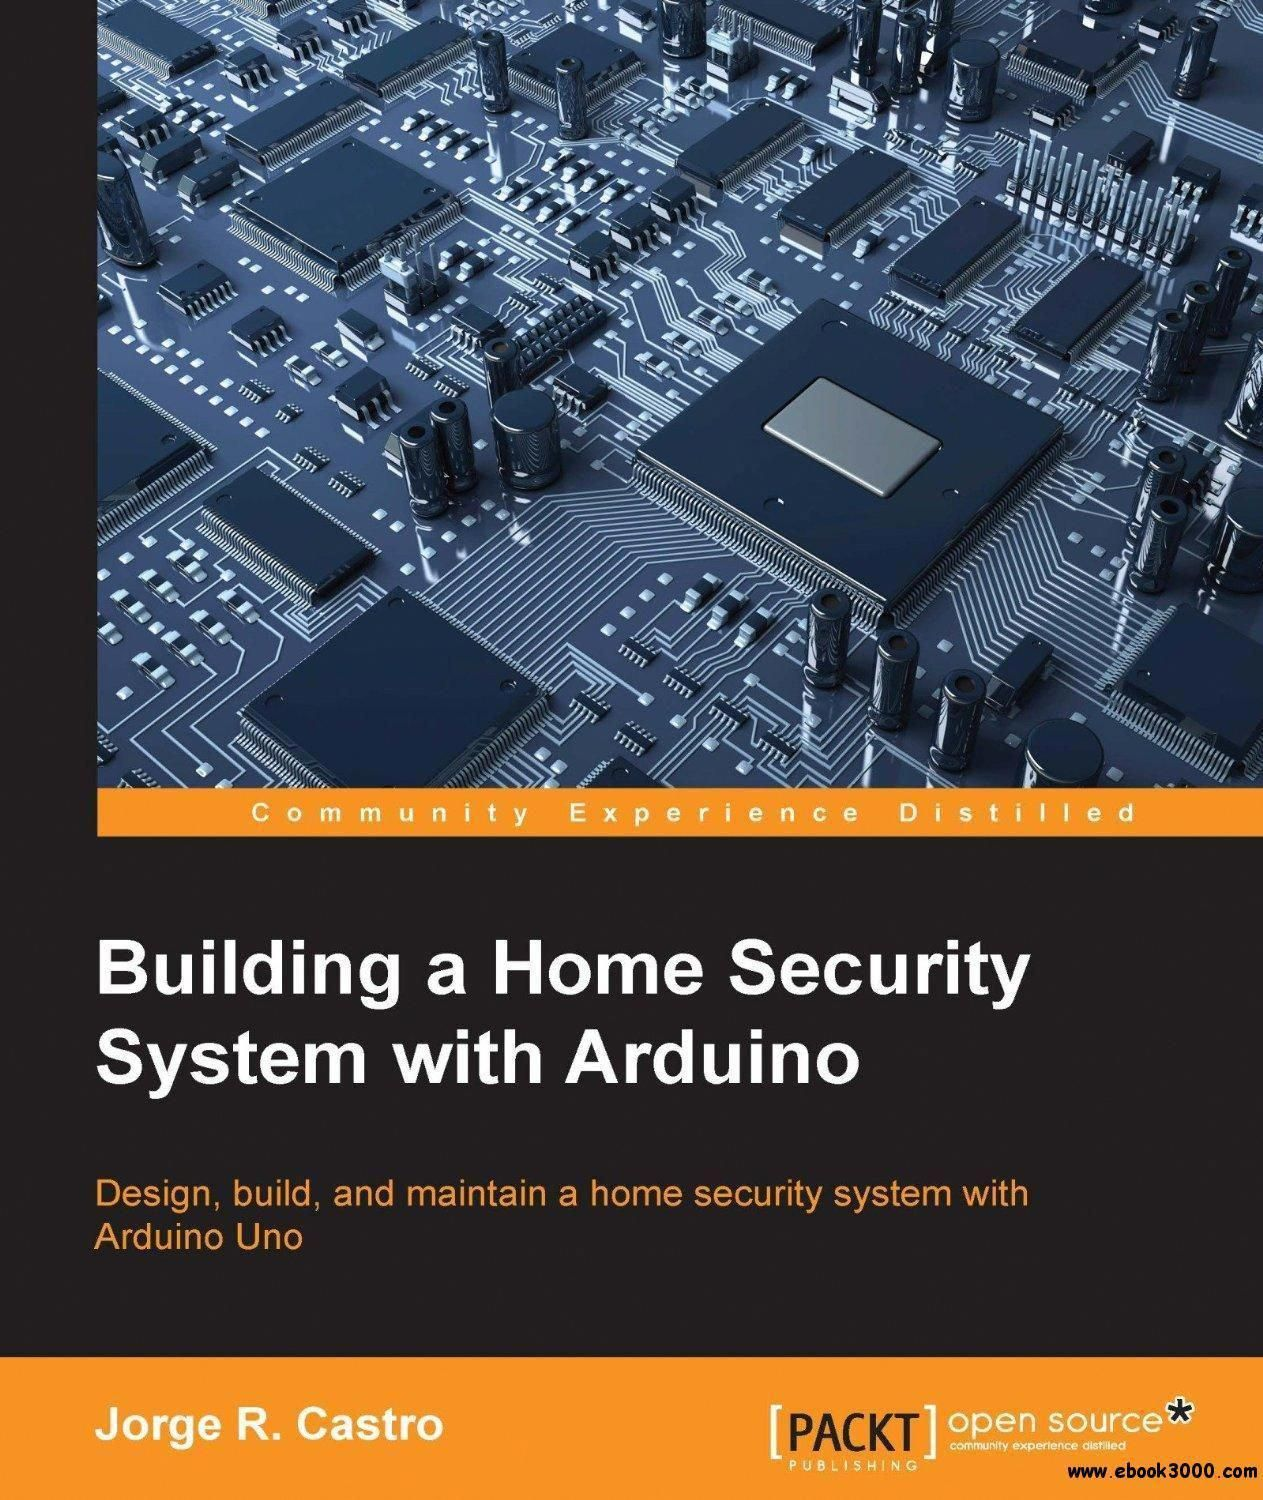 Building a Home Security System with Arduino Free eBooks